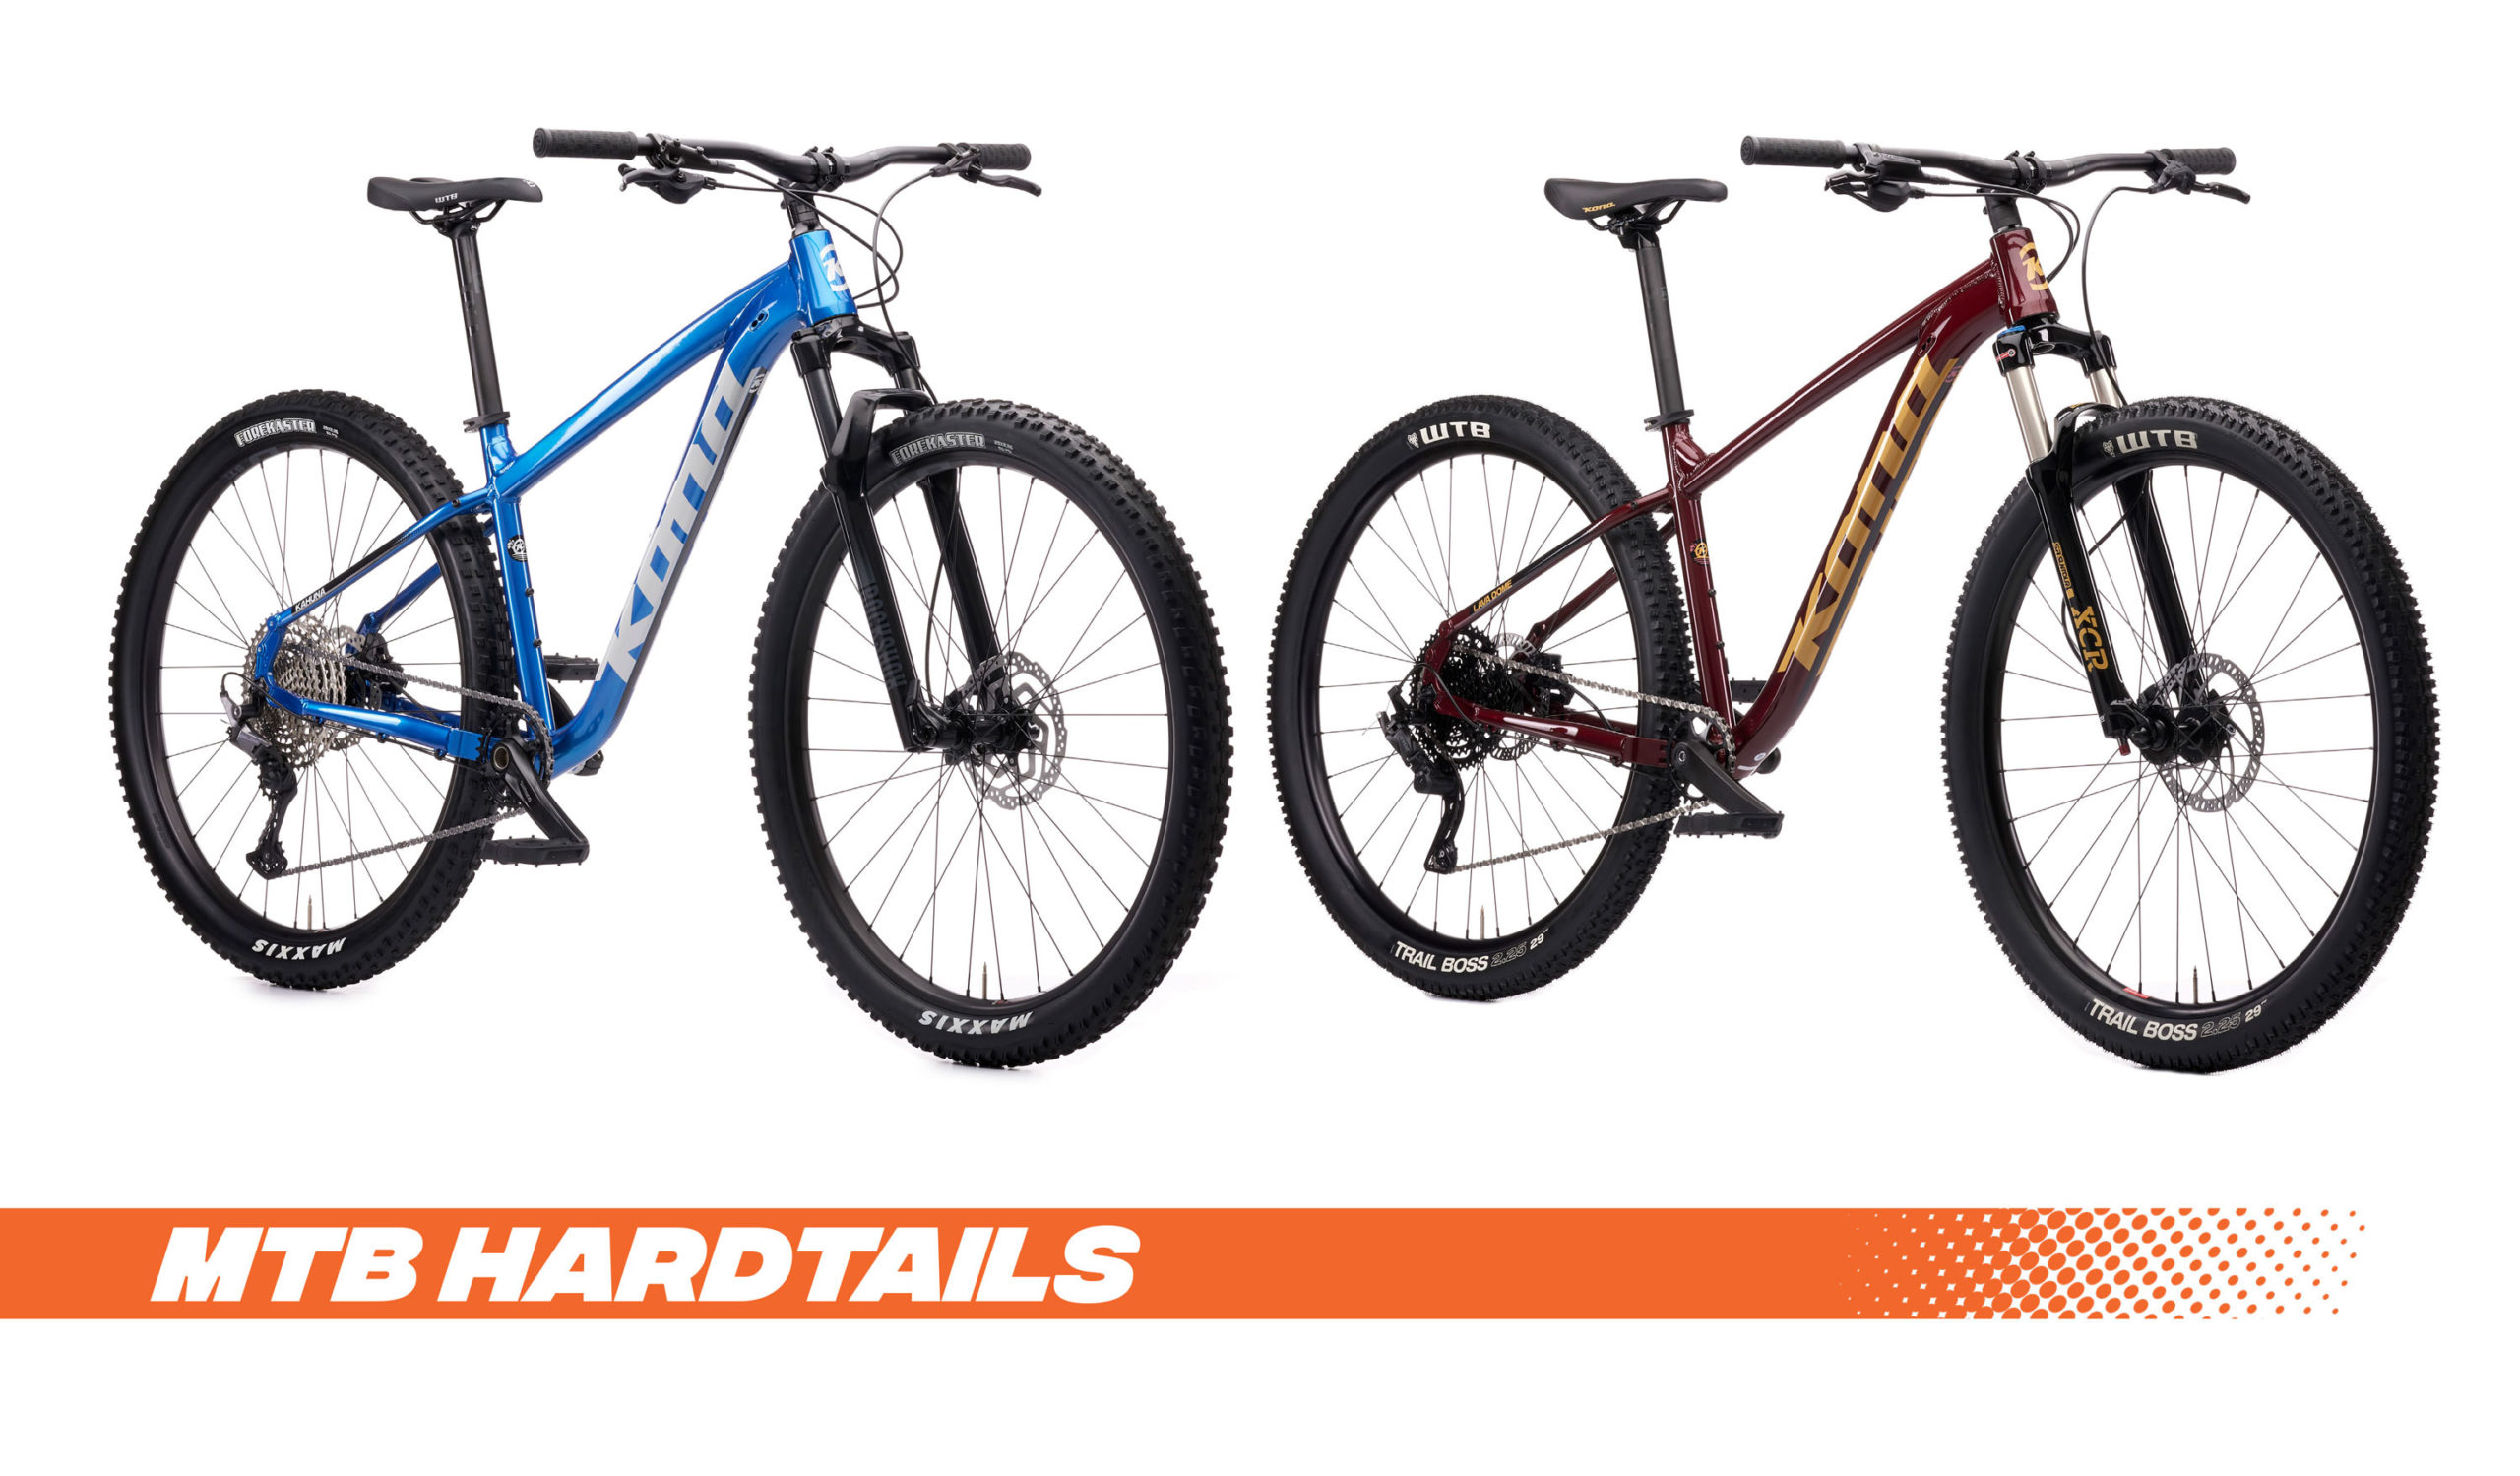 Best Hardtail Mountain Bike 2021 Hardtail Time! 2021 MTB Hardtails Are Here! | KONA COG